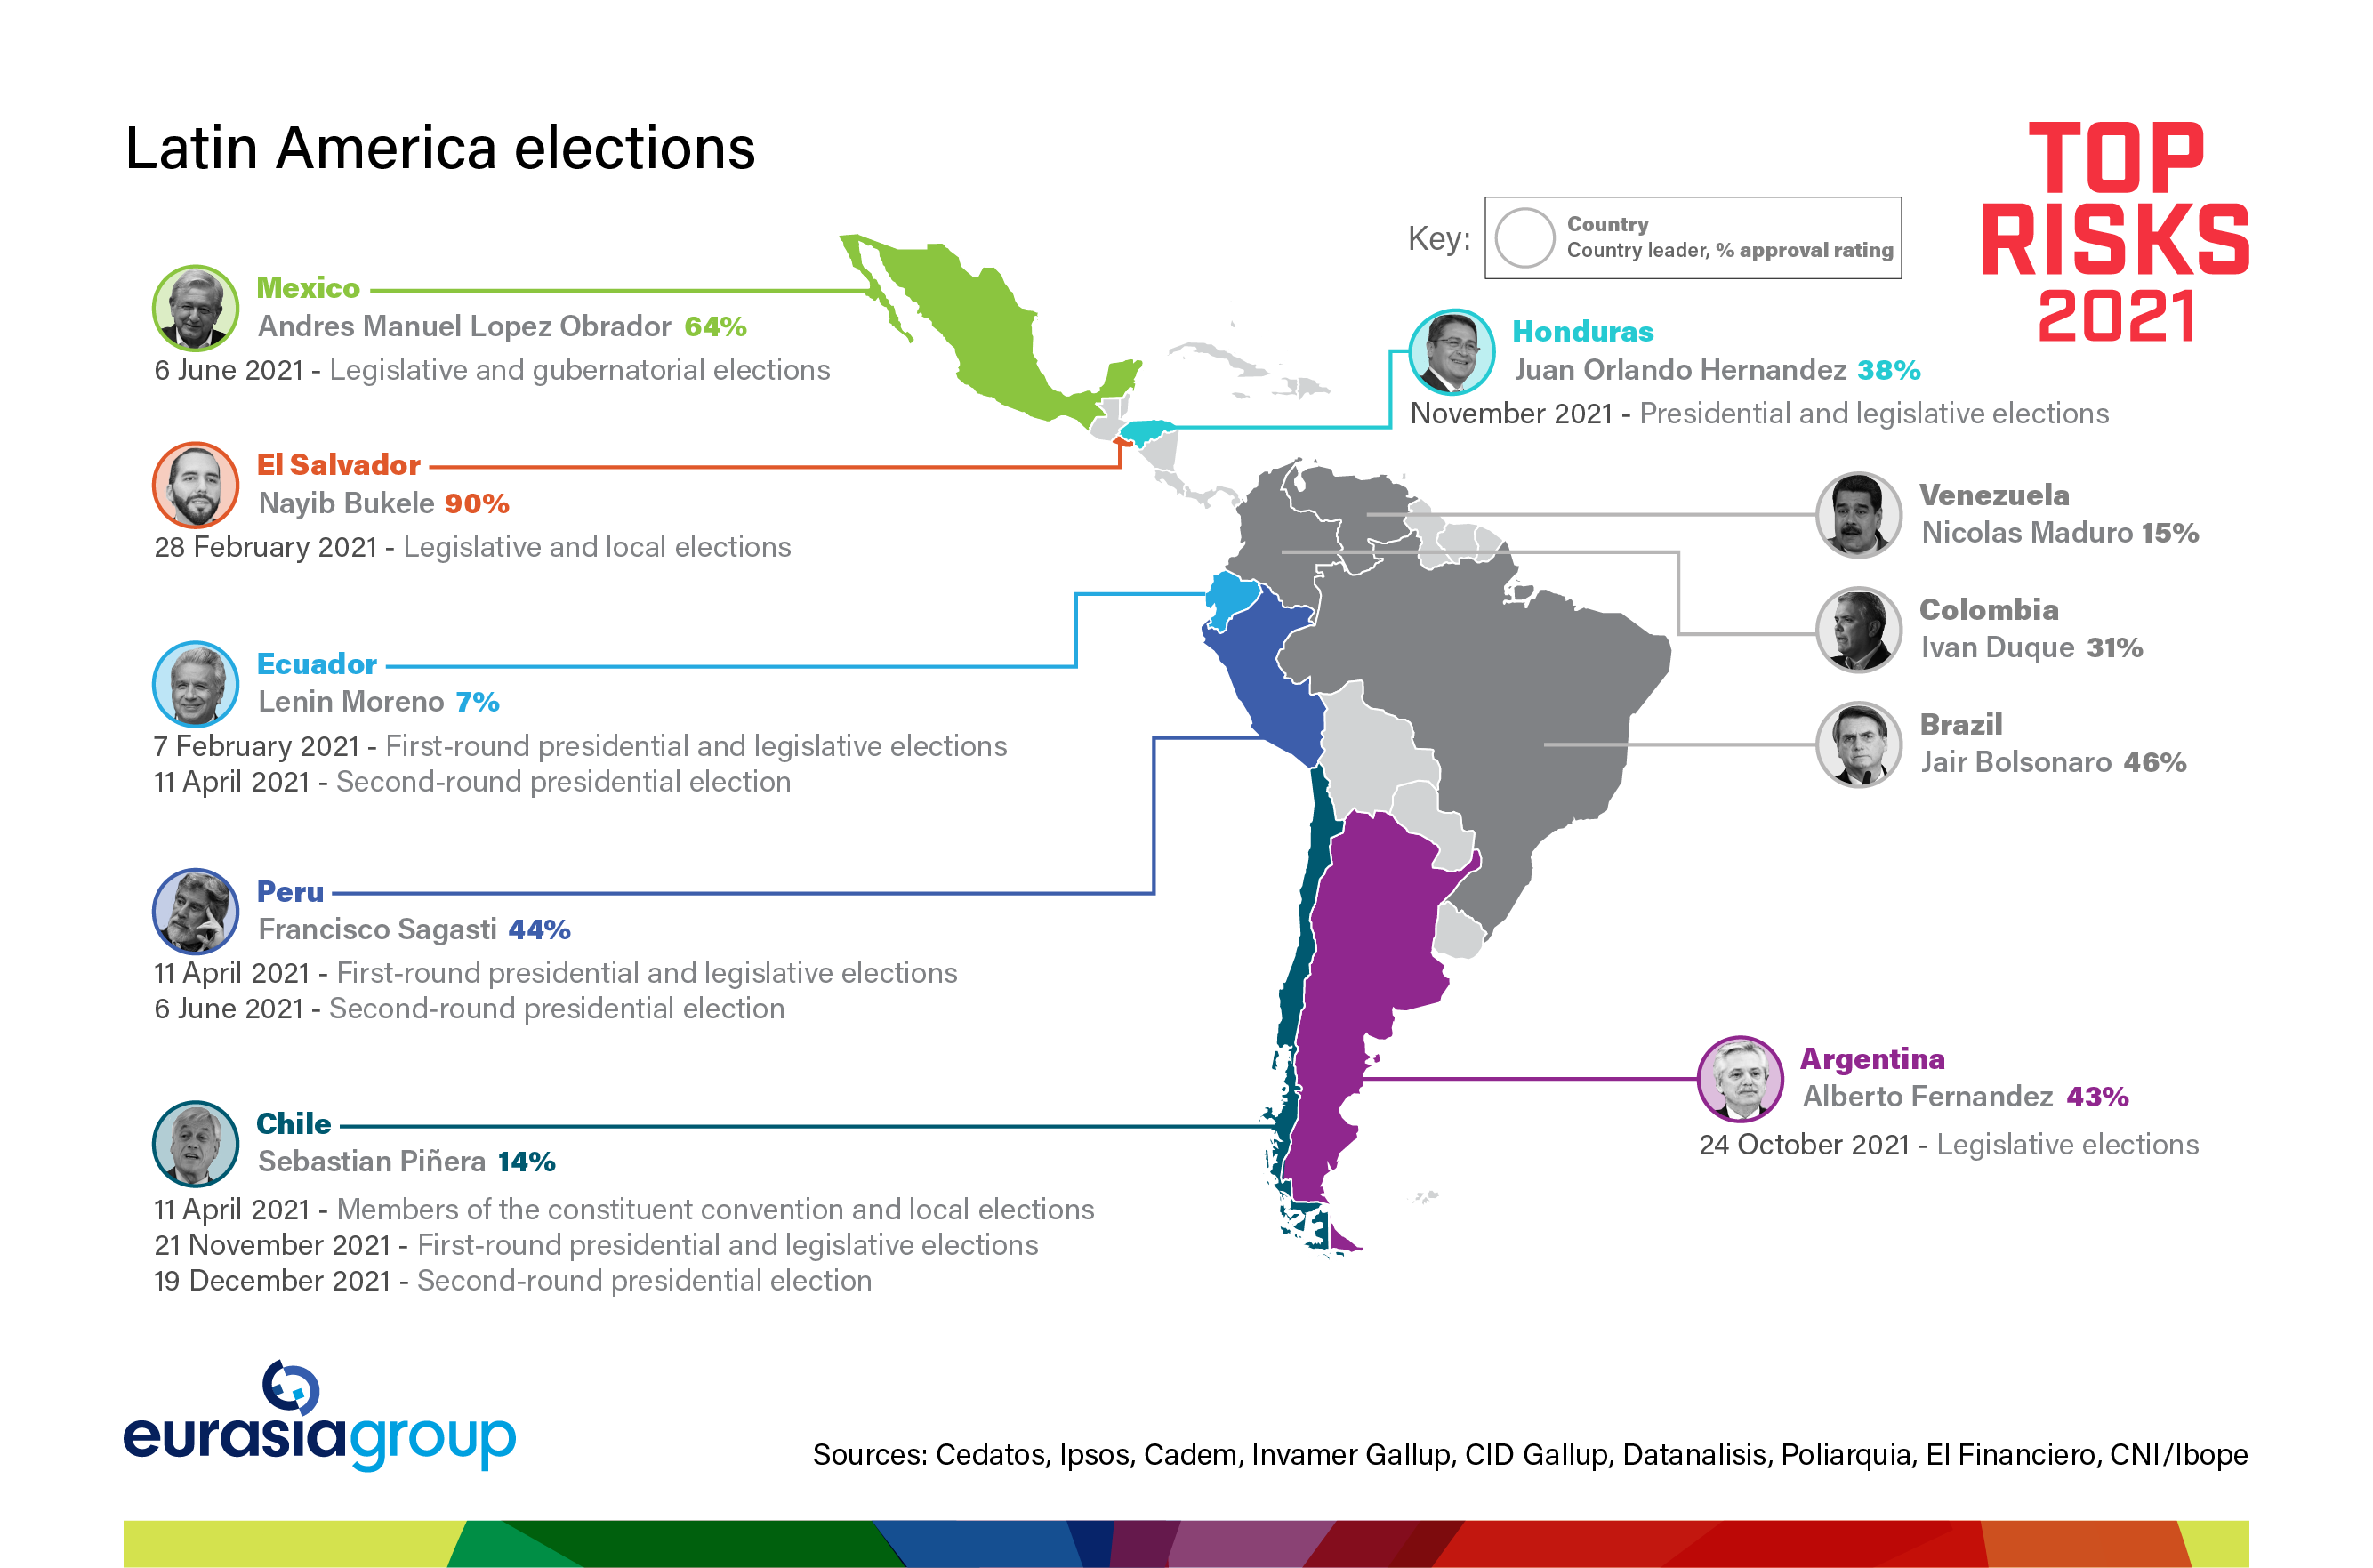 Top Risks 2021 Risk 10: Latin America disappoints graph of Latin American elections